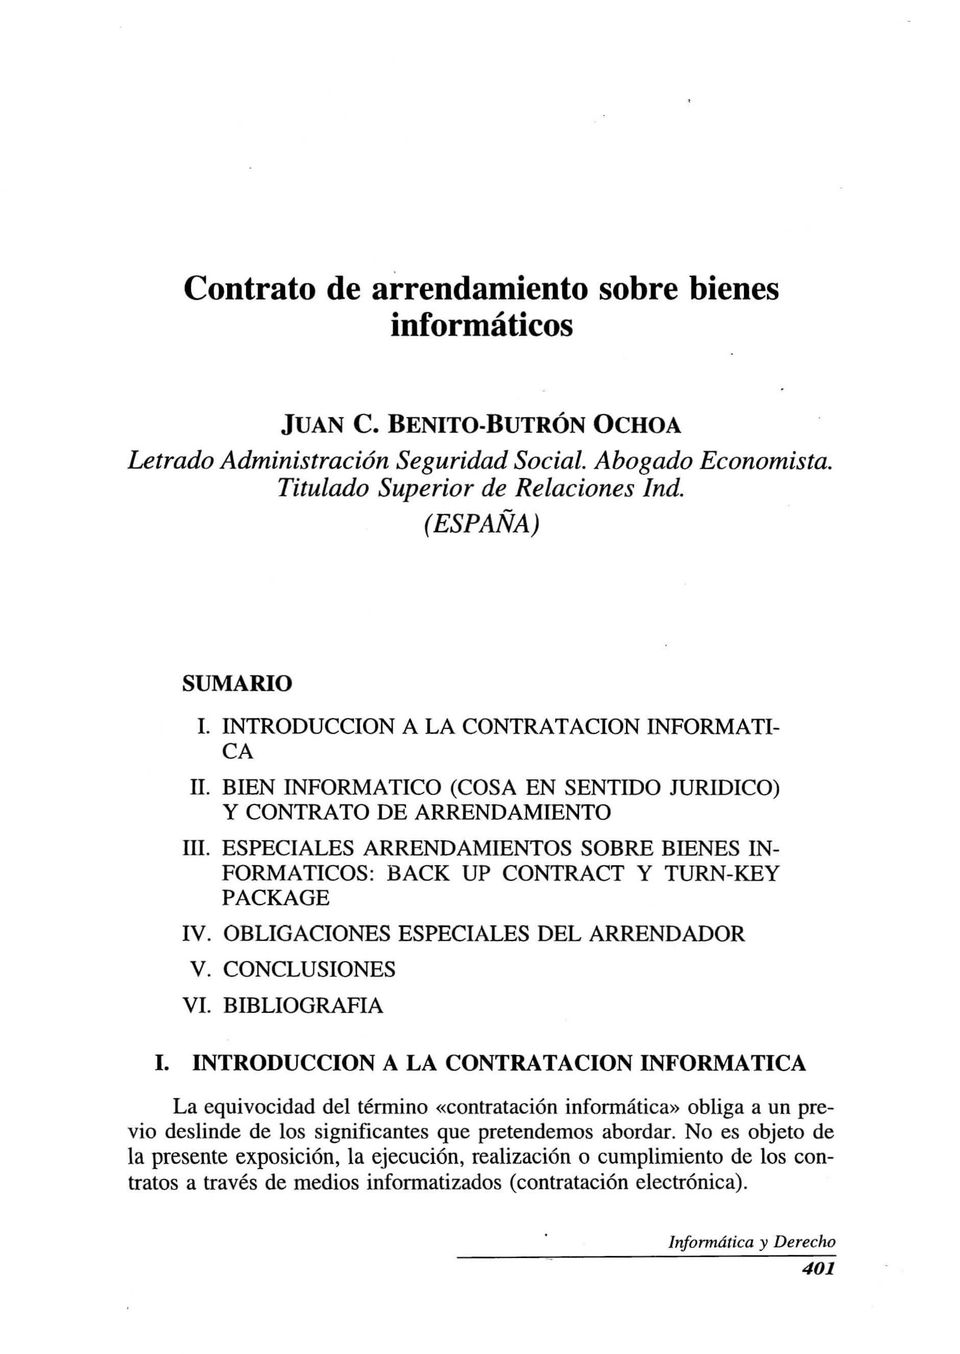 ESPECIALES ARRENDAMIENTOS SOBRE BIENES IN FORMATICOS: BACK UP CONTRACT Y TURN-KEY PACKAGE IV. OBLIGACIONES ESPECIALES DEL ARRENDADOR V. CONCLUSIONES VI. BIBLIOGRAFIA l.